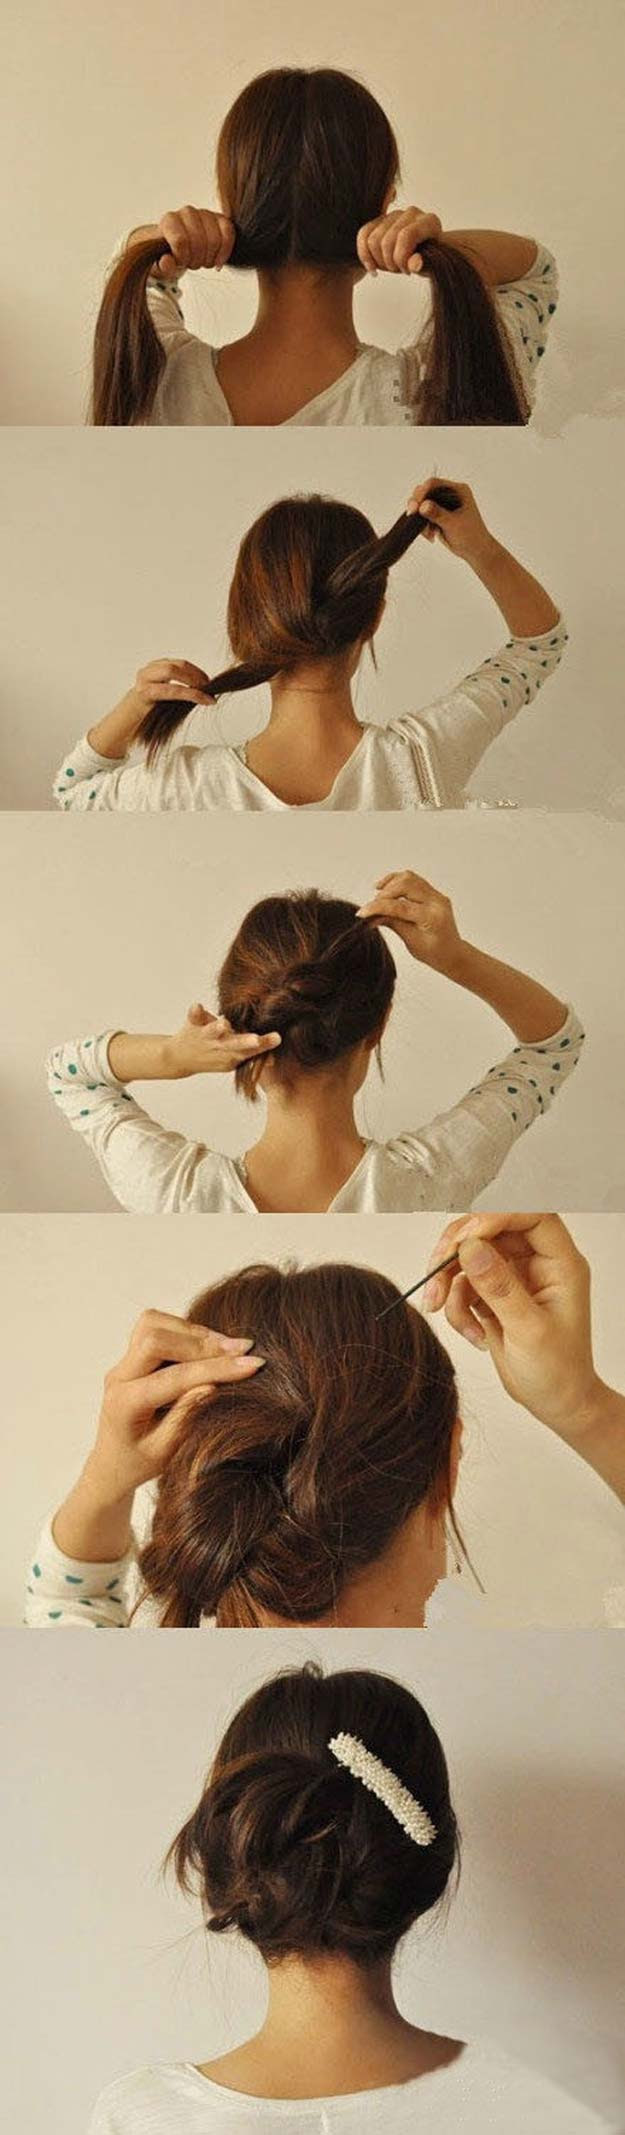 36 Best Hairstyles for Long Hair - DIY Projects for Teens